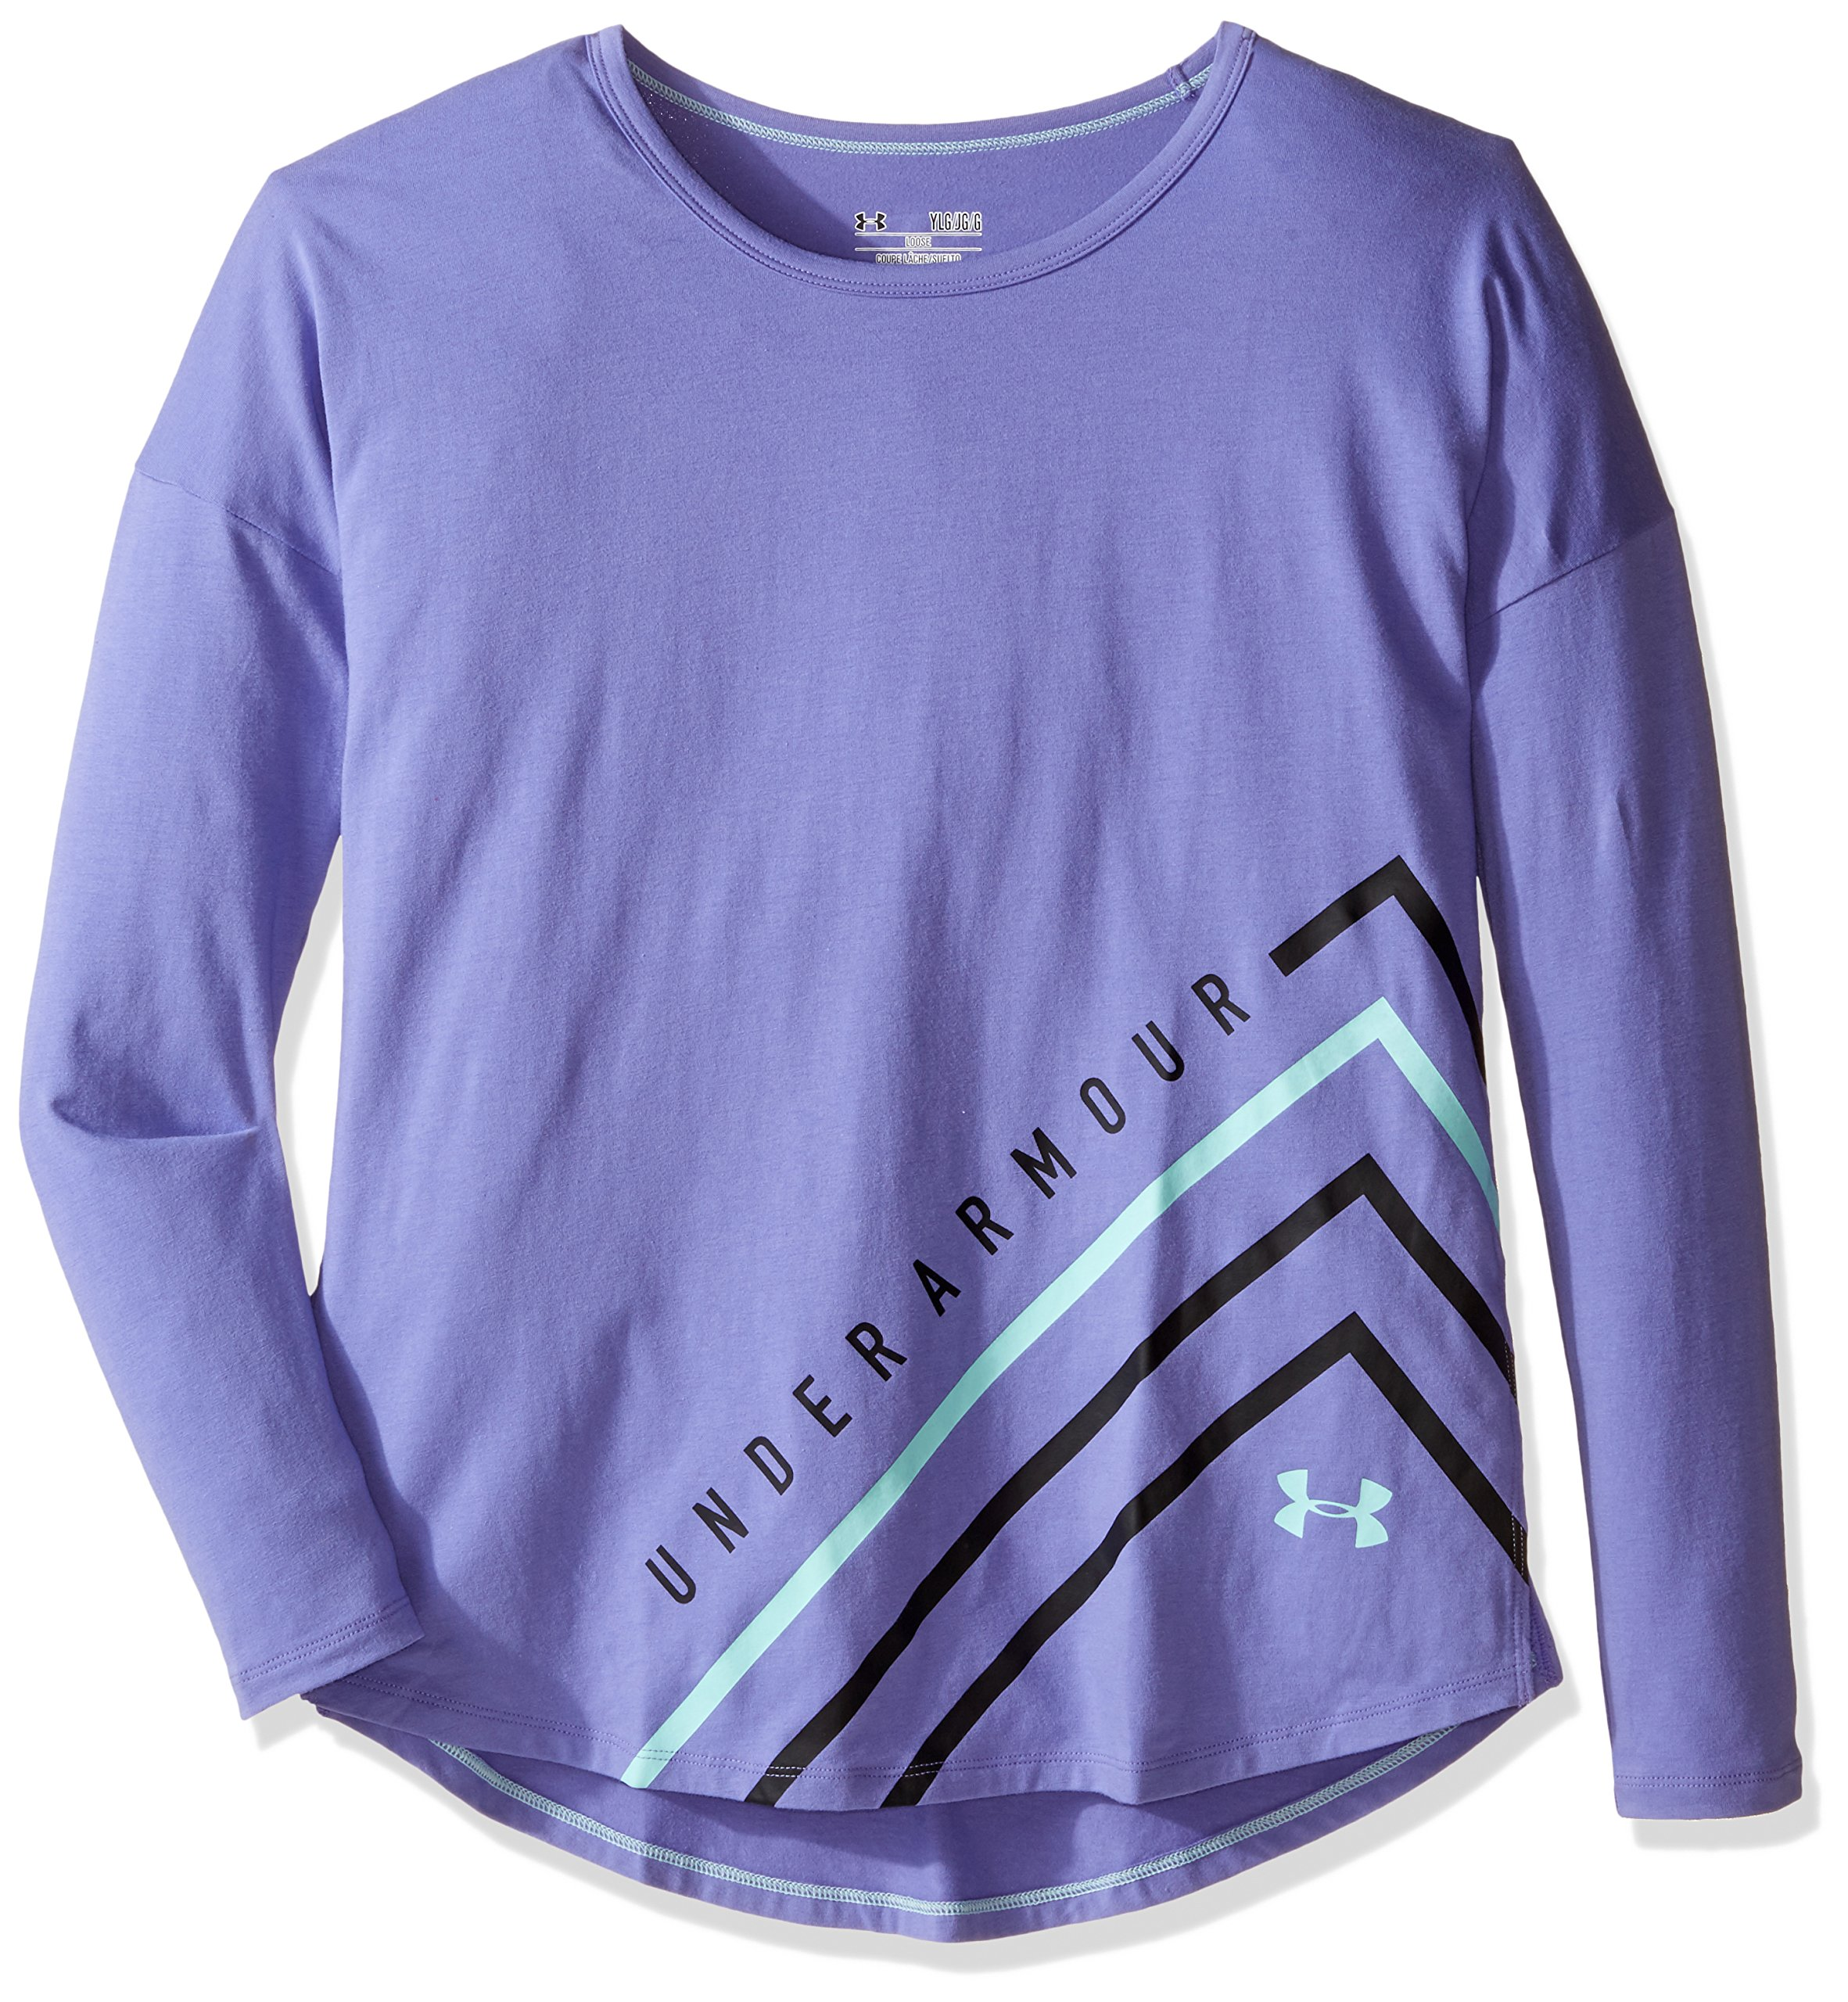 Under Armour Girls' Dazzle Long Sleeve, Violet Storm/Crystal, Youth X-Large by Under Armour